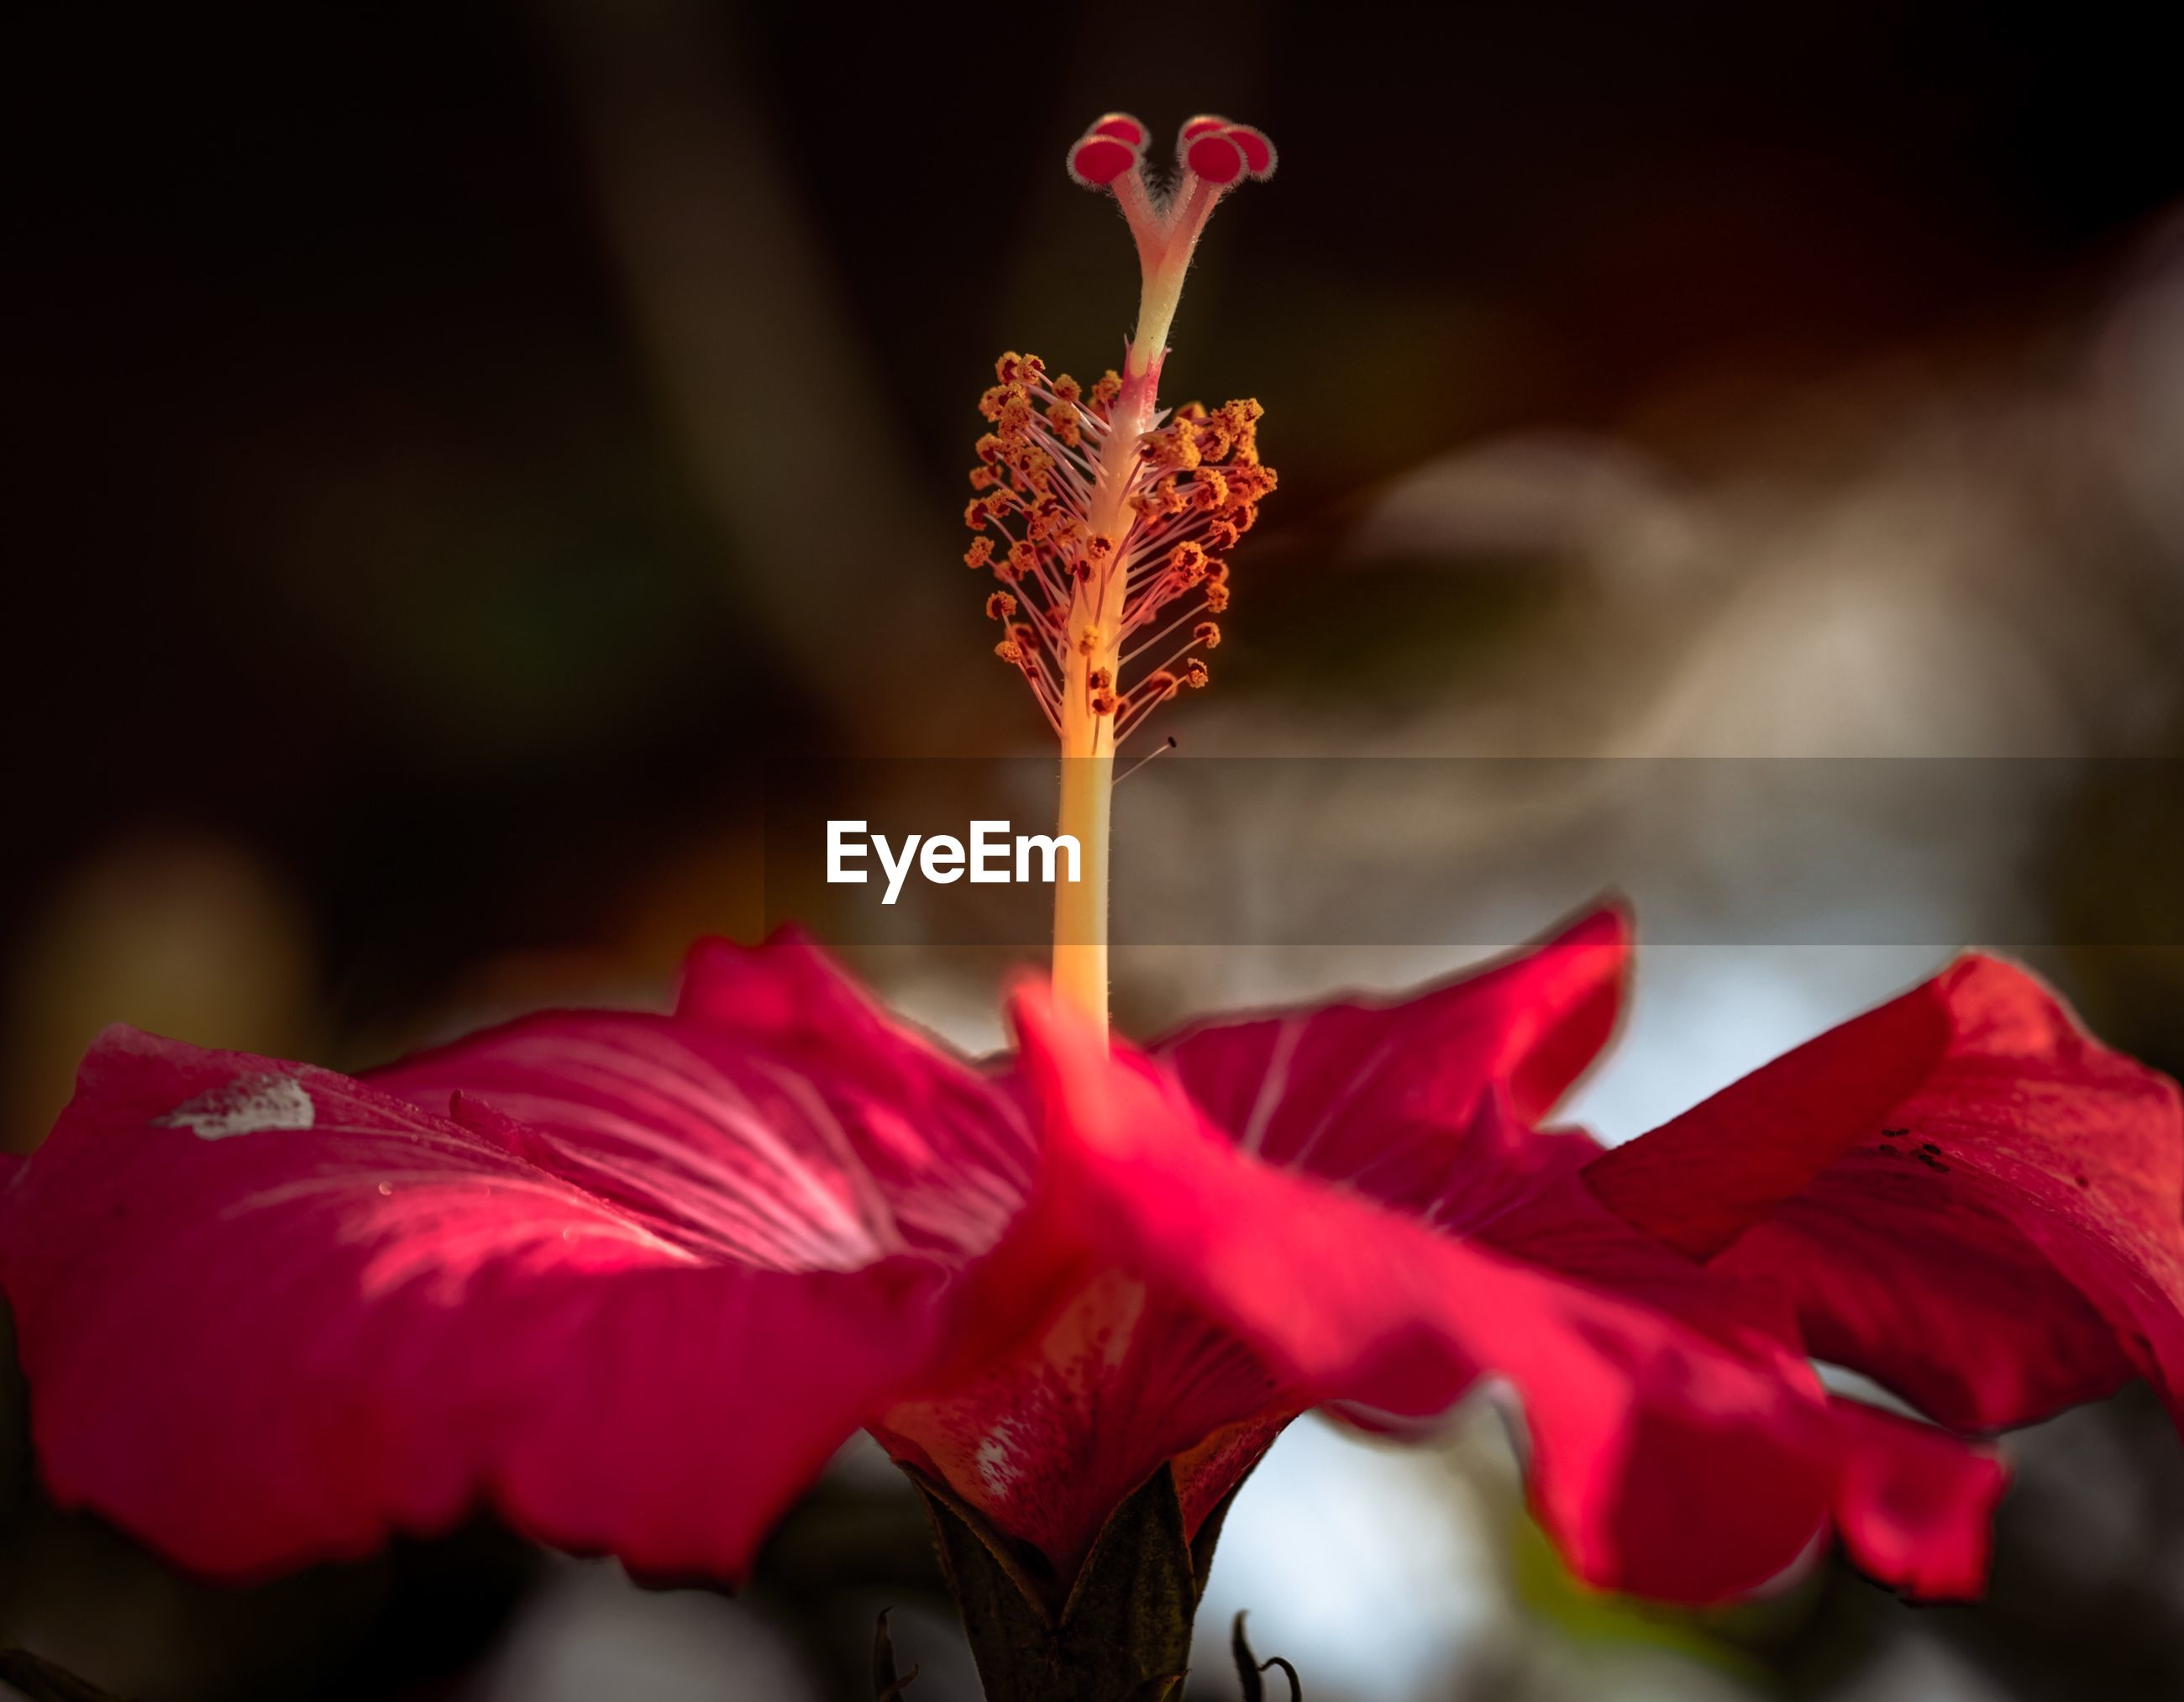 CLOSE-UP OF RED HIBISCUS AGAINST BLURRED BACKGROUND